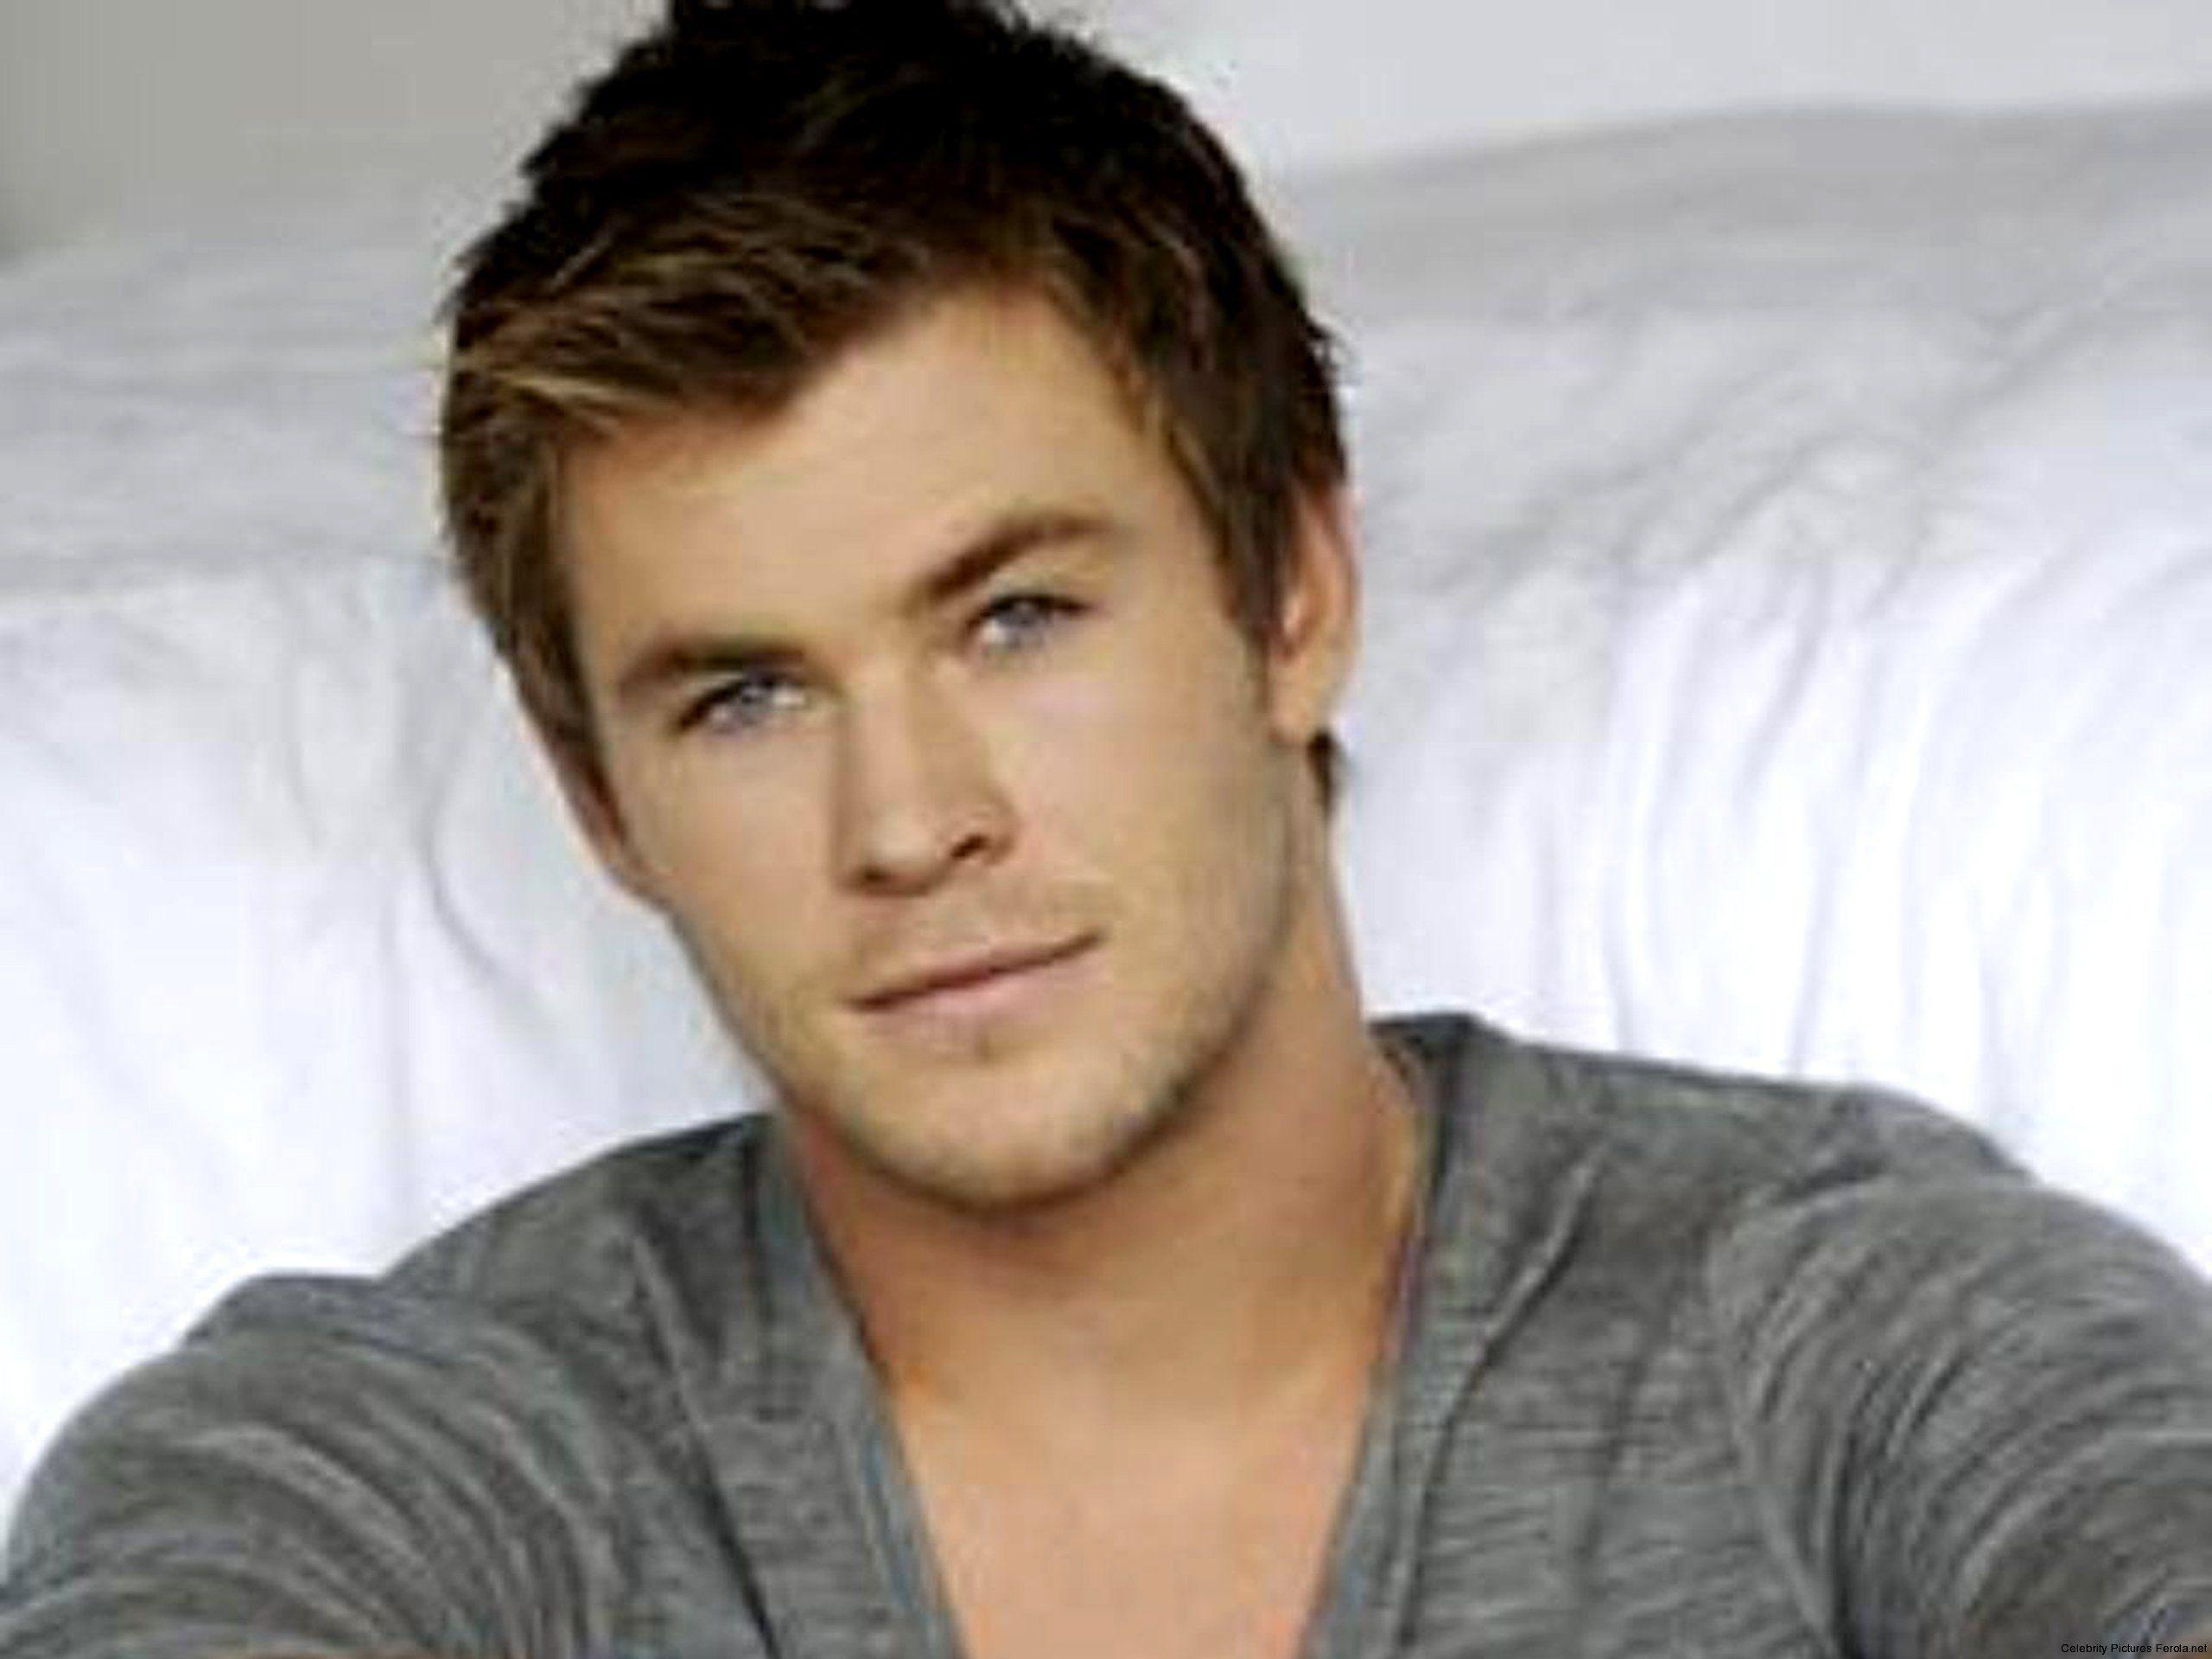 Chris Hemsworth Wallpapers High Resolution and Quality Download